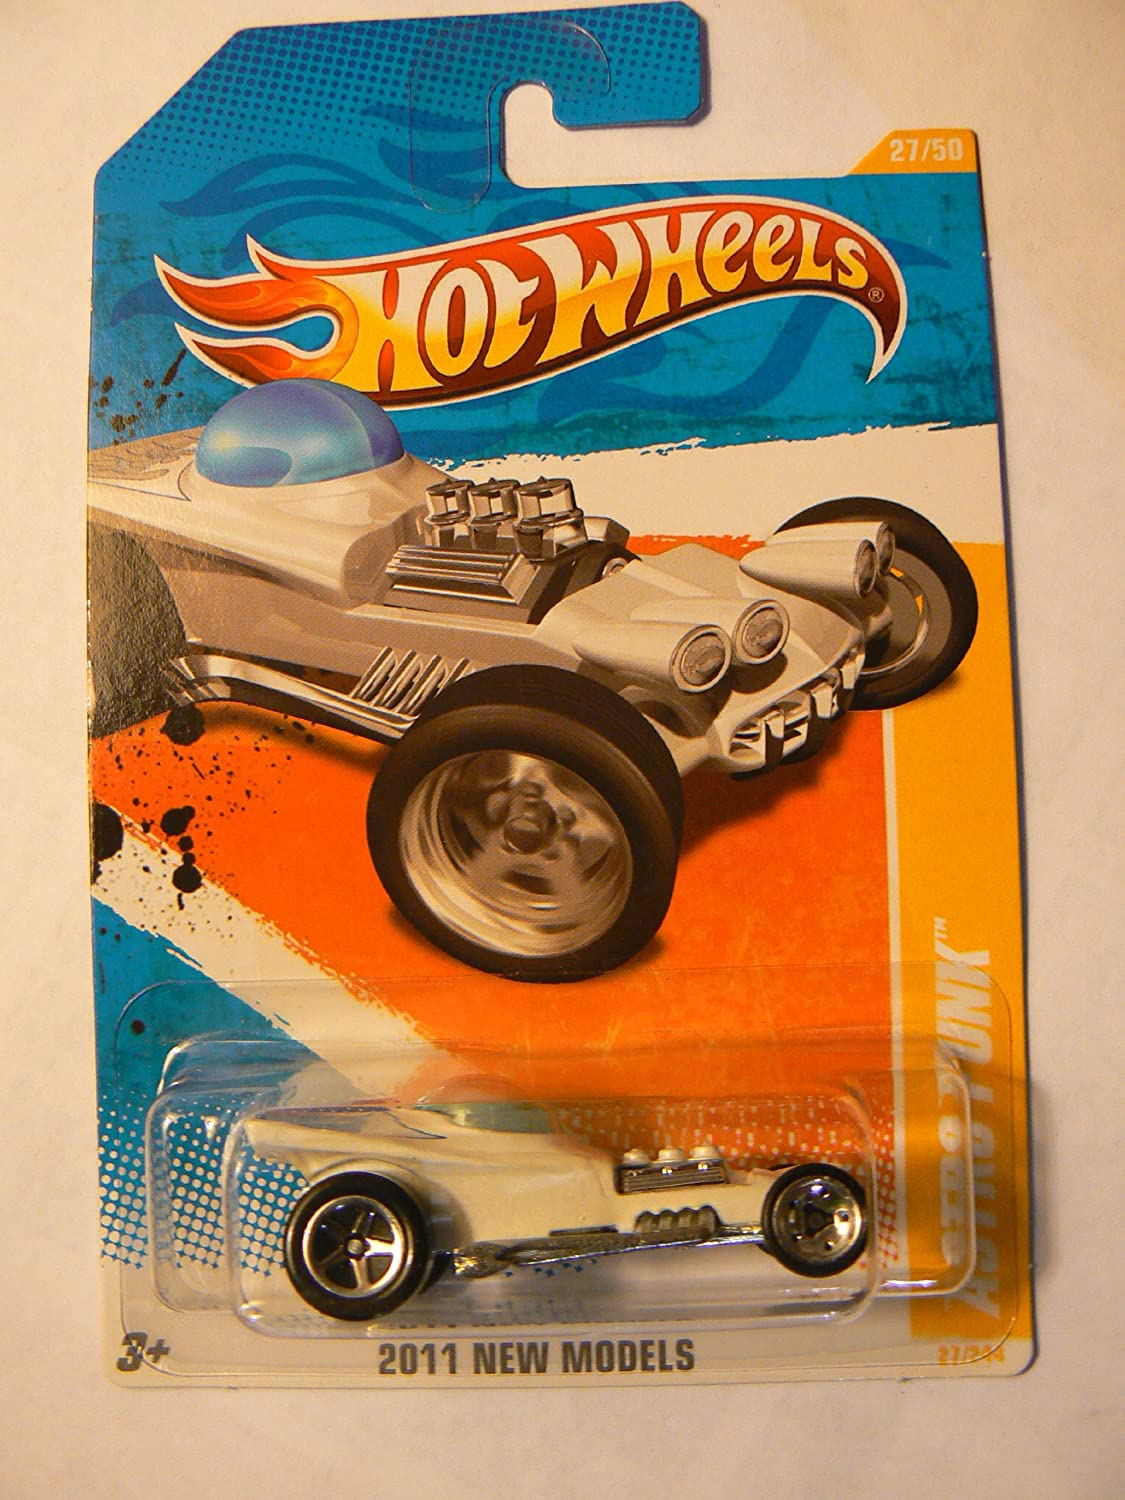 Hot Wheels 2011 New Models (27 50) White Astro Funk 27 244 by Hot Wheels